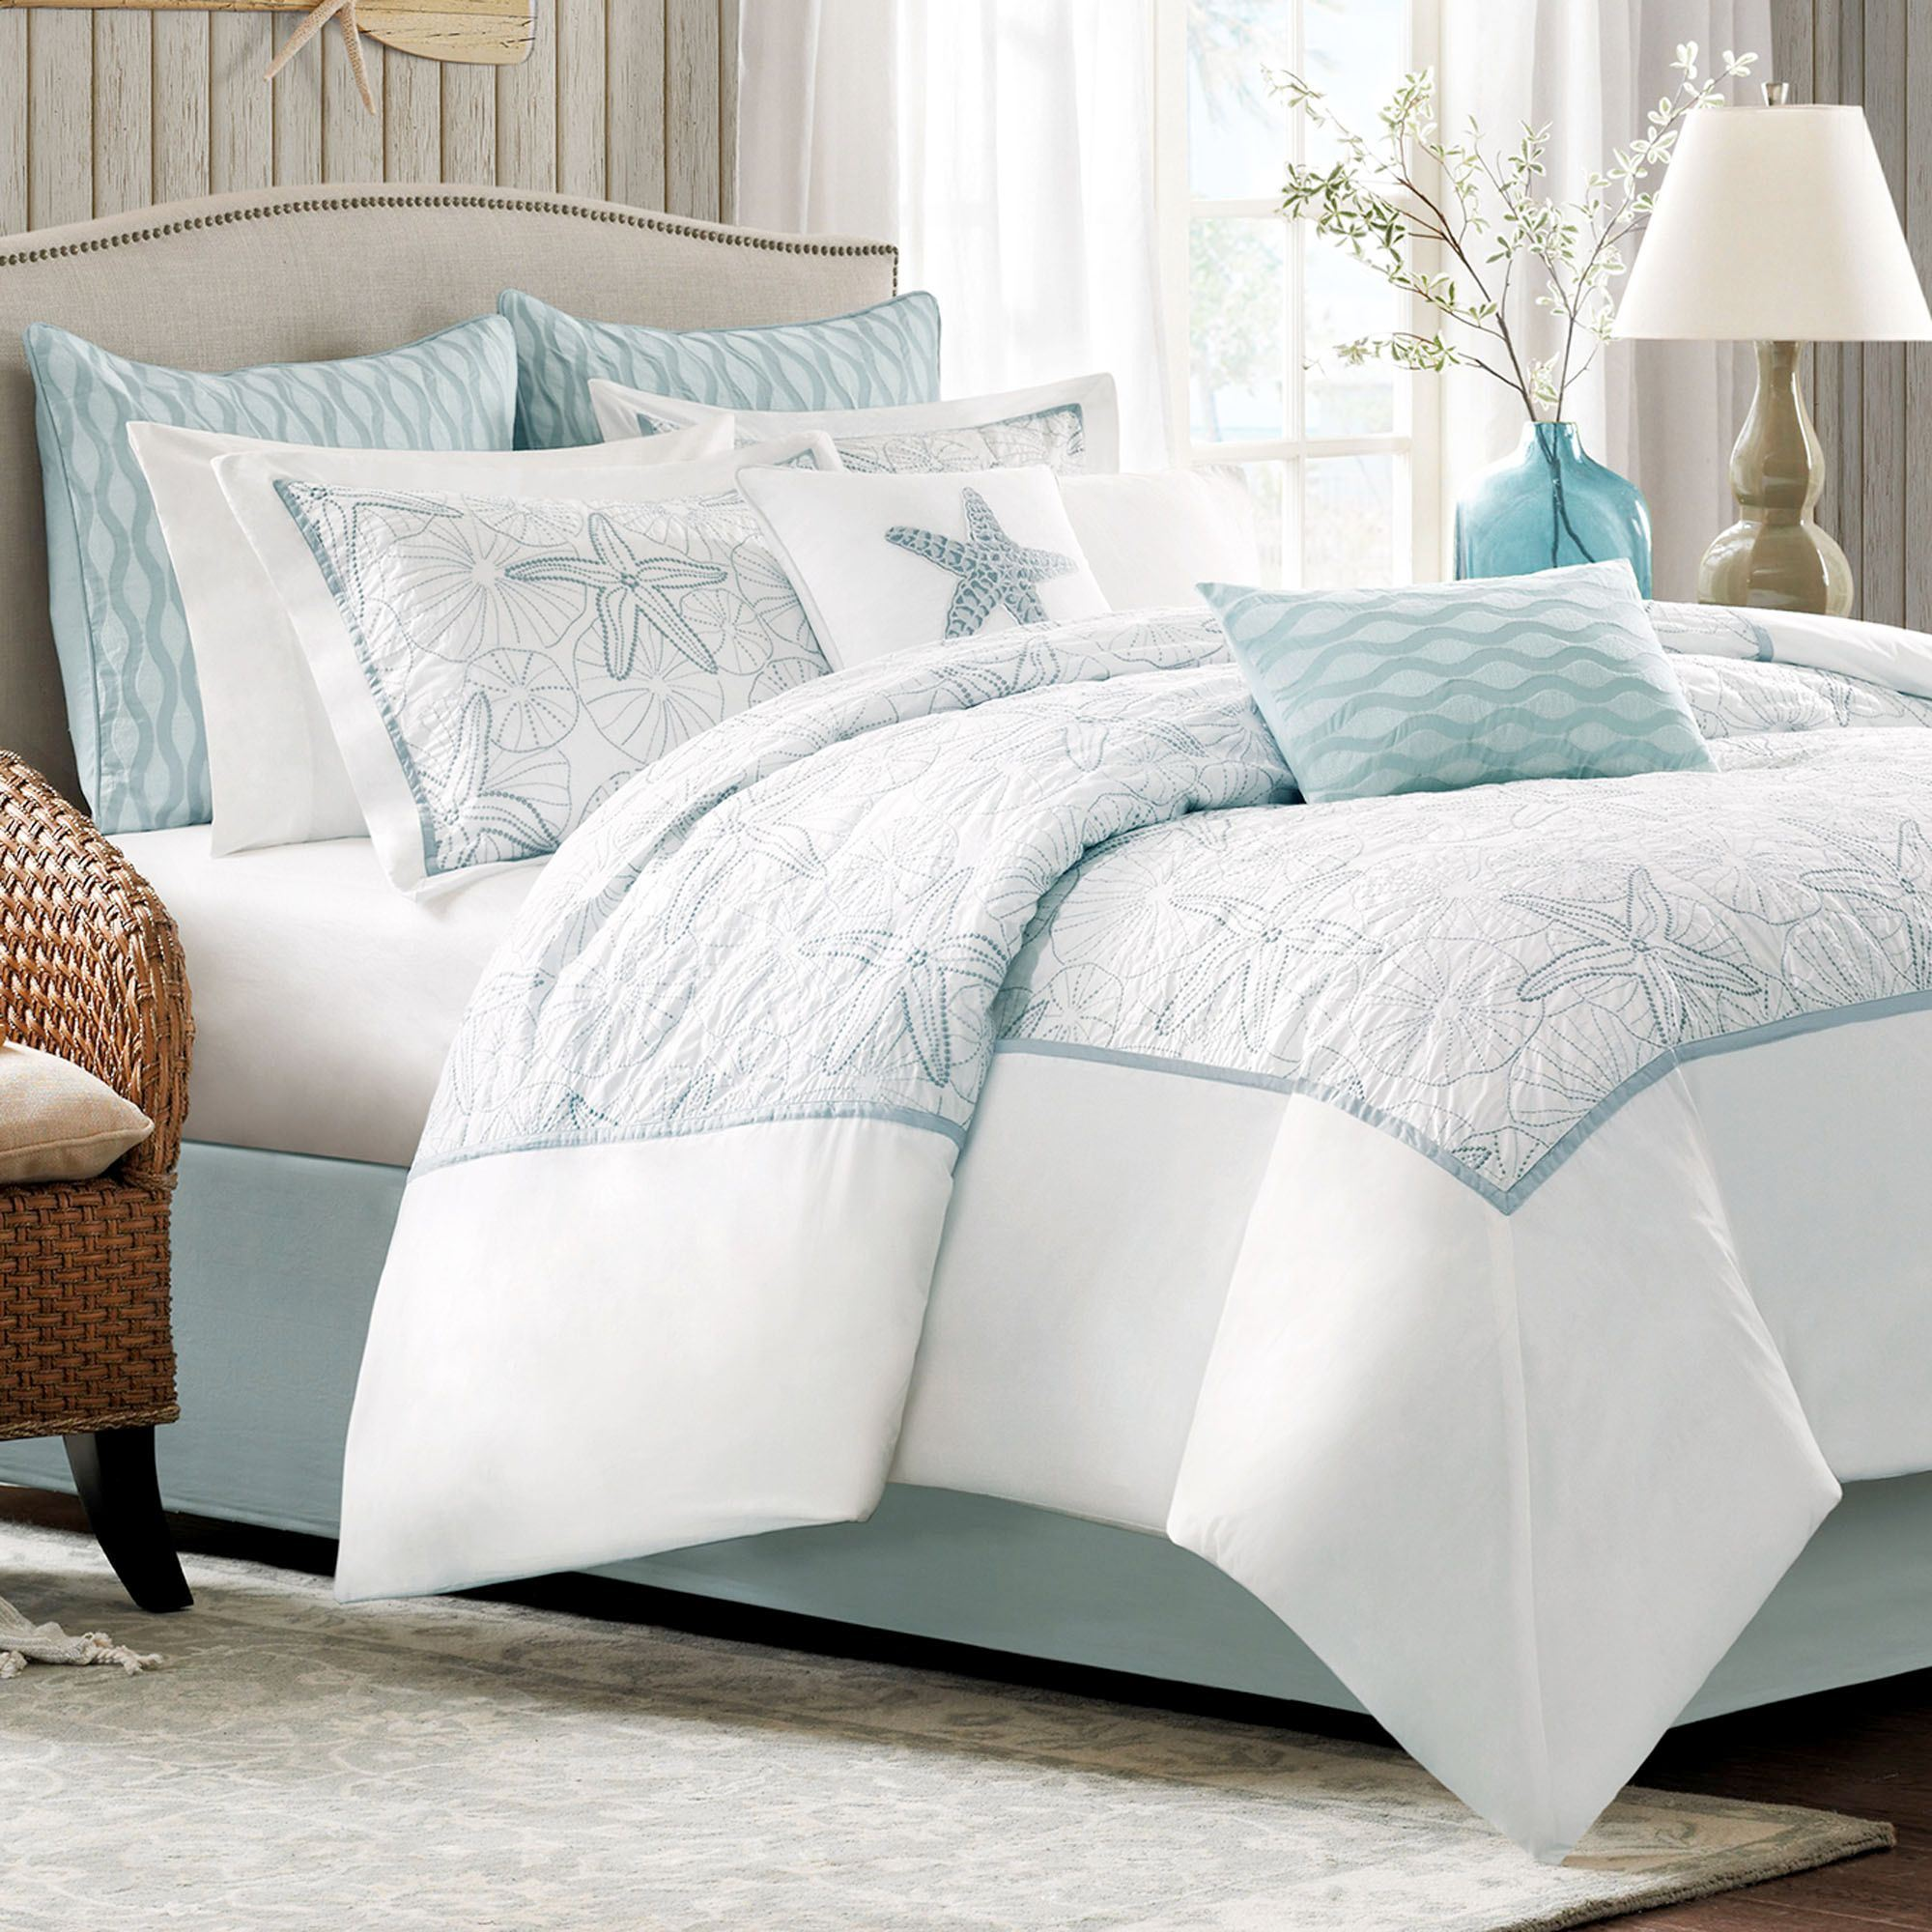 Maya bay embroidered coastal comforter bedding for Home designs comforter